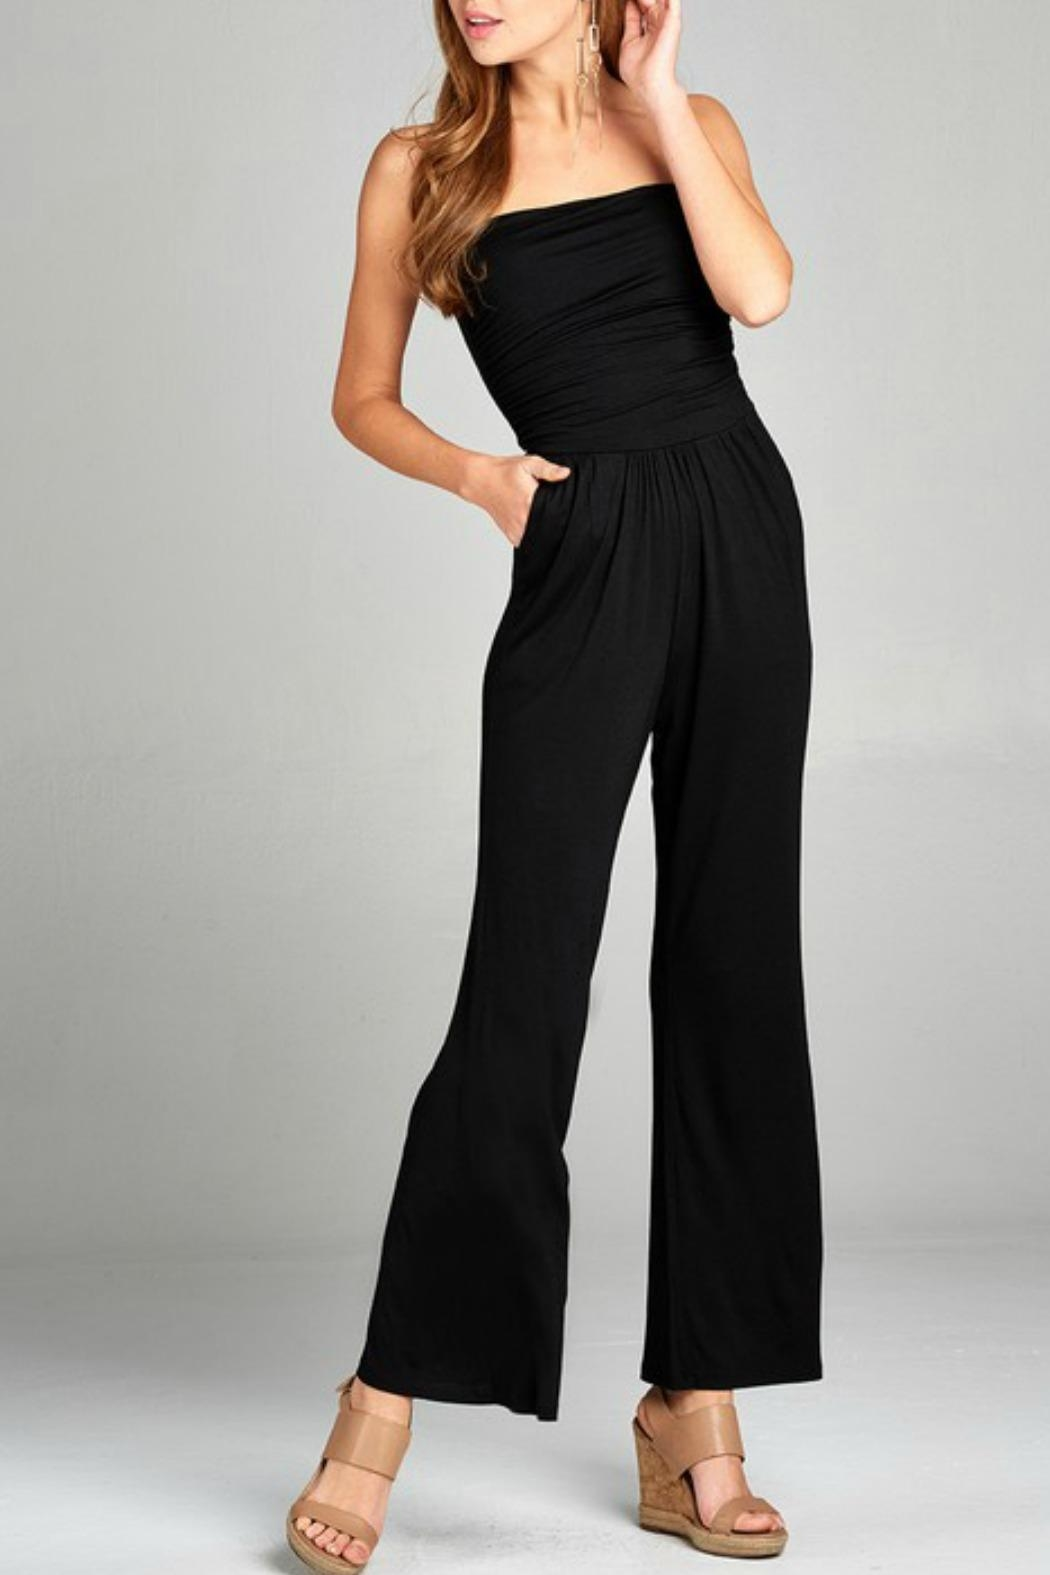 ee95713b43cf7 Active Basic Tube Top Jumpsuit from Brooklyn by Polly   Esther ...